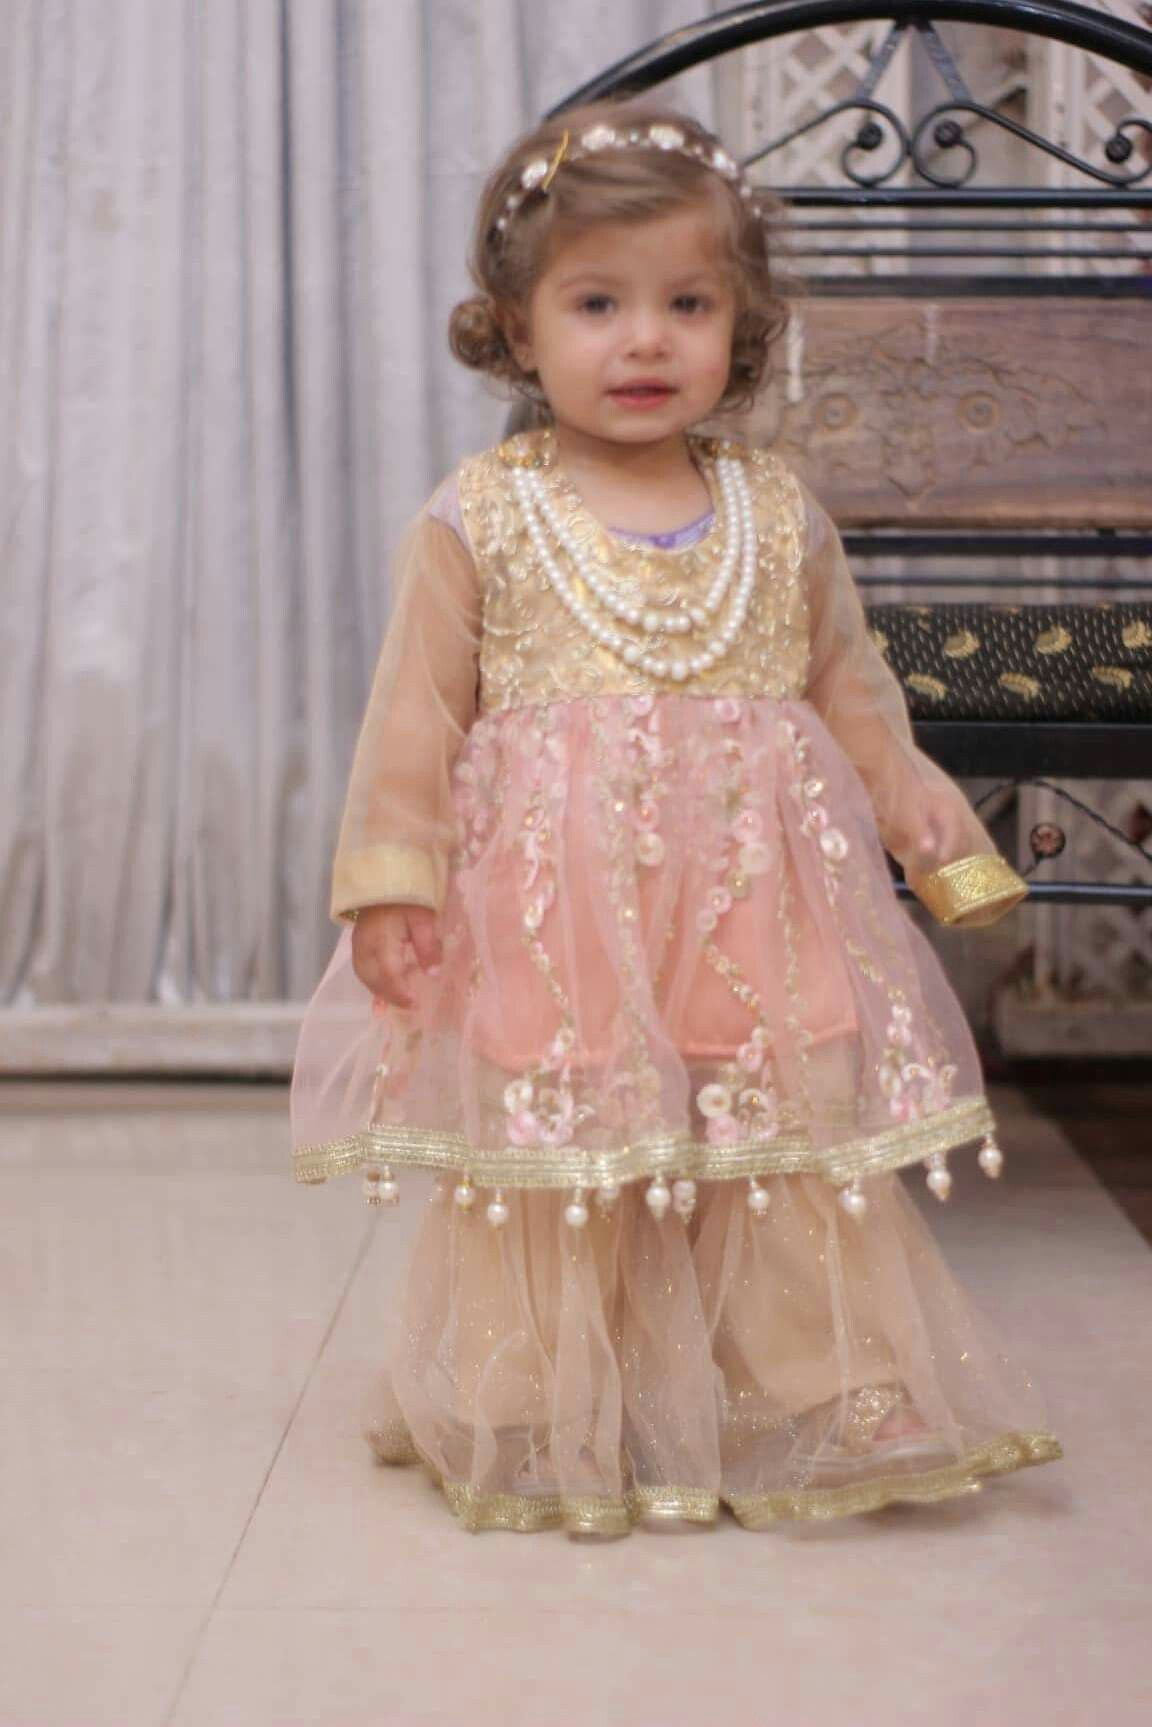 Pin by Aisha Mukhtar on baby design  Baby girl wedding dress